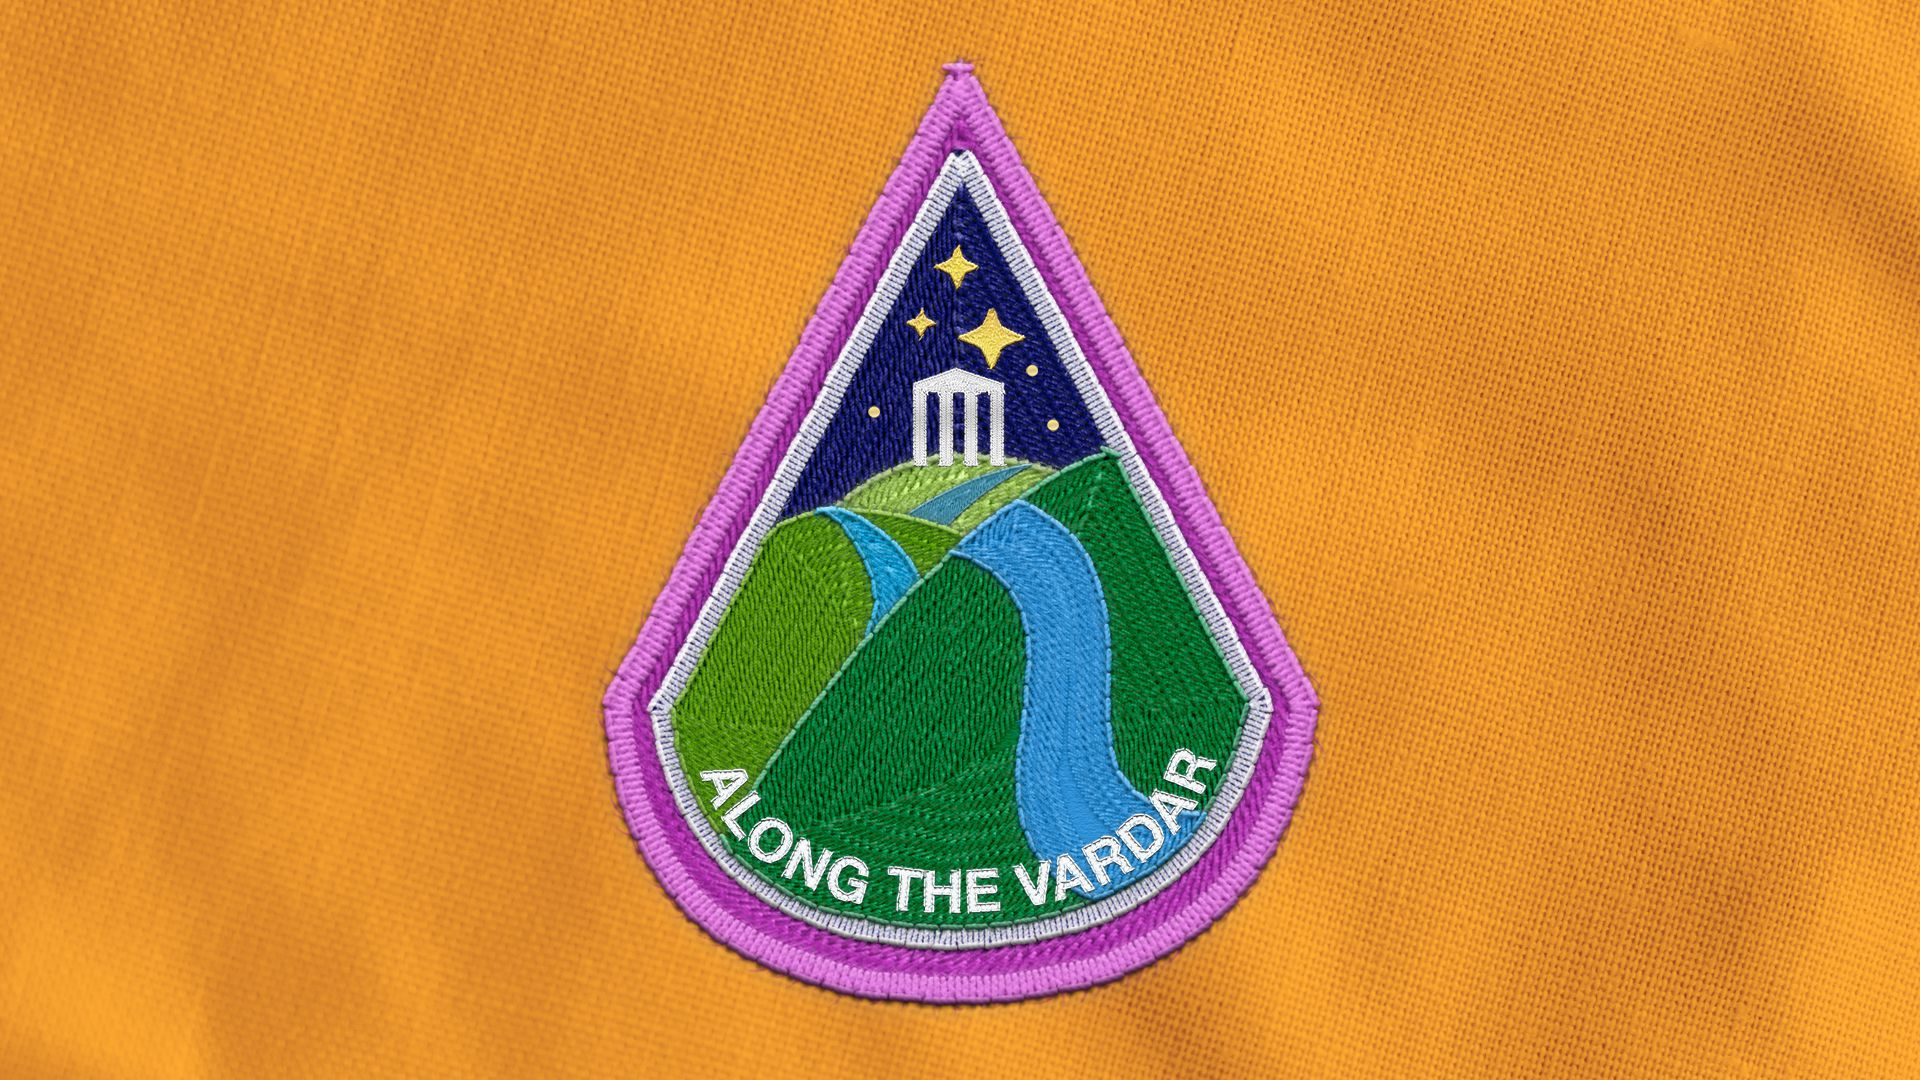 """Illustration of an astronaut badge depicting a river over rolling hills with a Grecian temple in the background, the words """"ALONG THE VARDAR"""" are on the badge."""